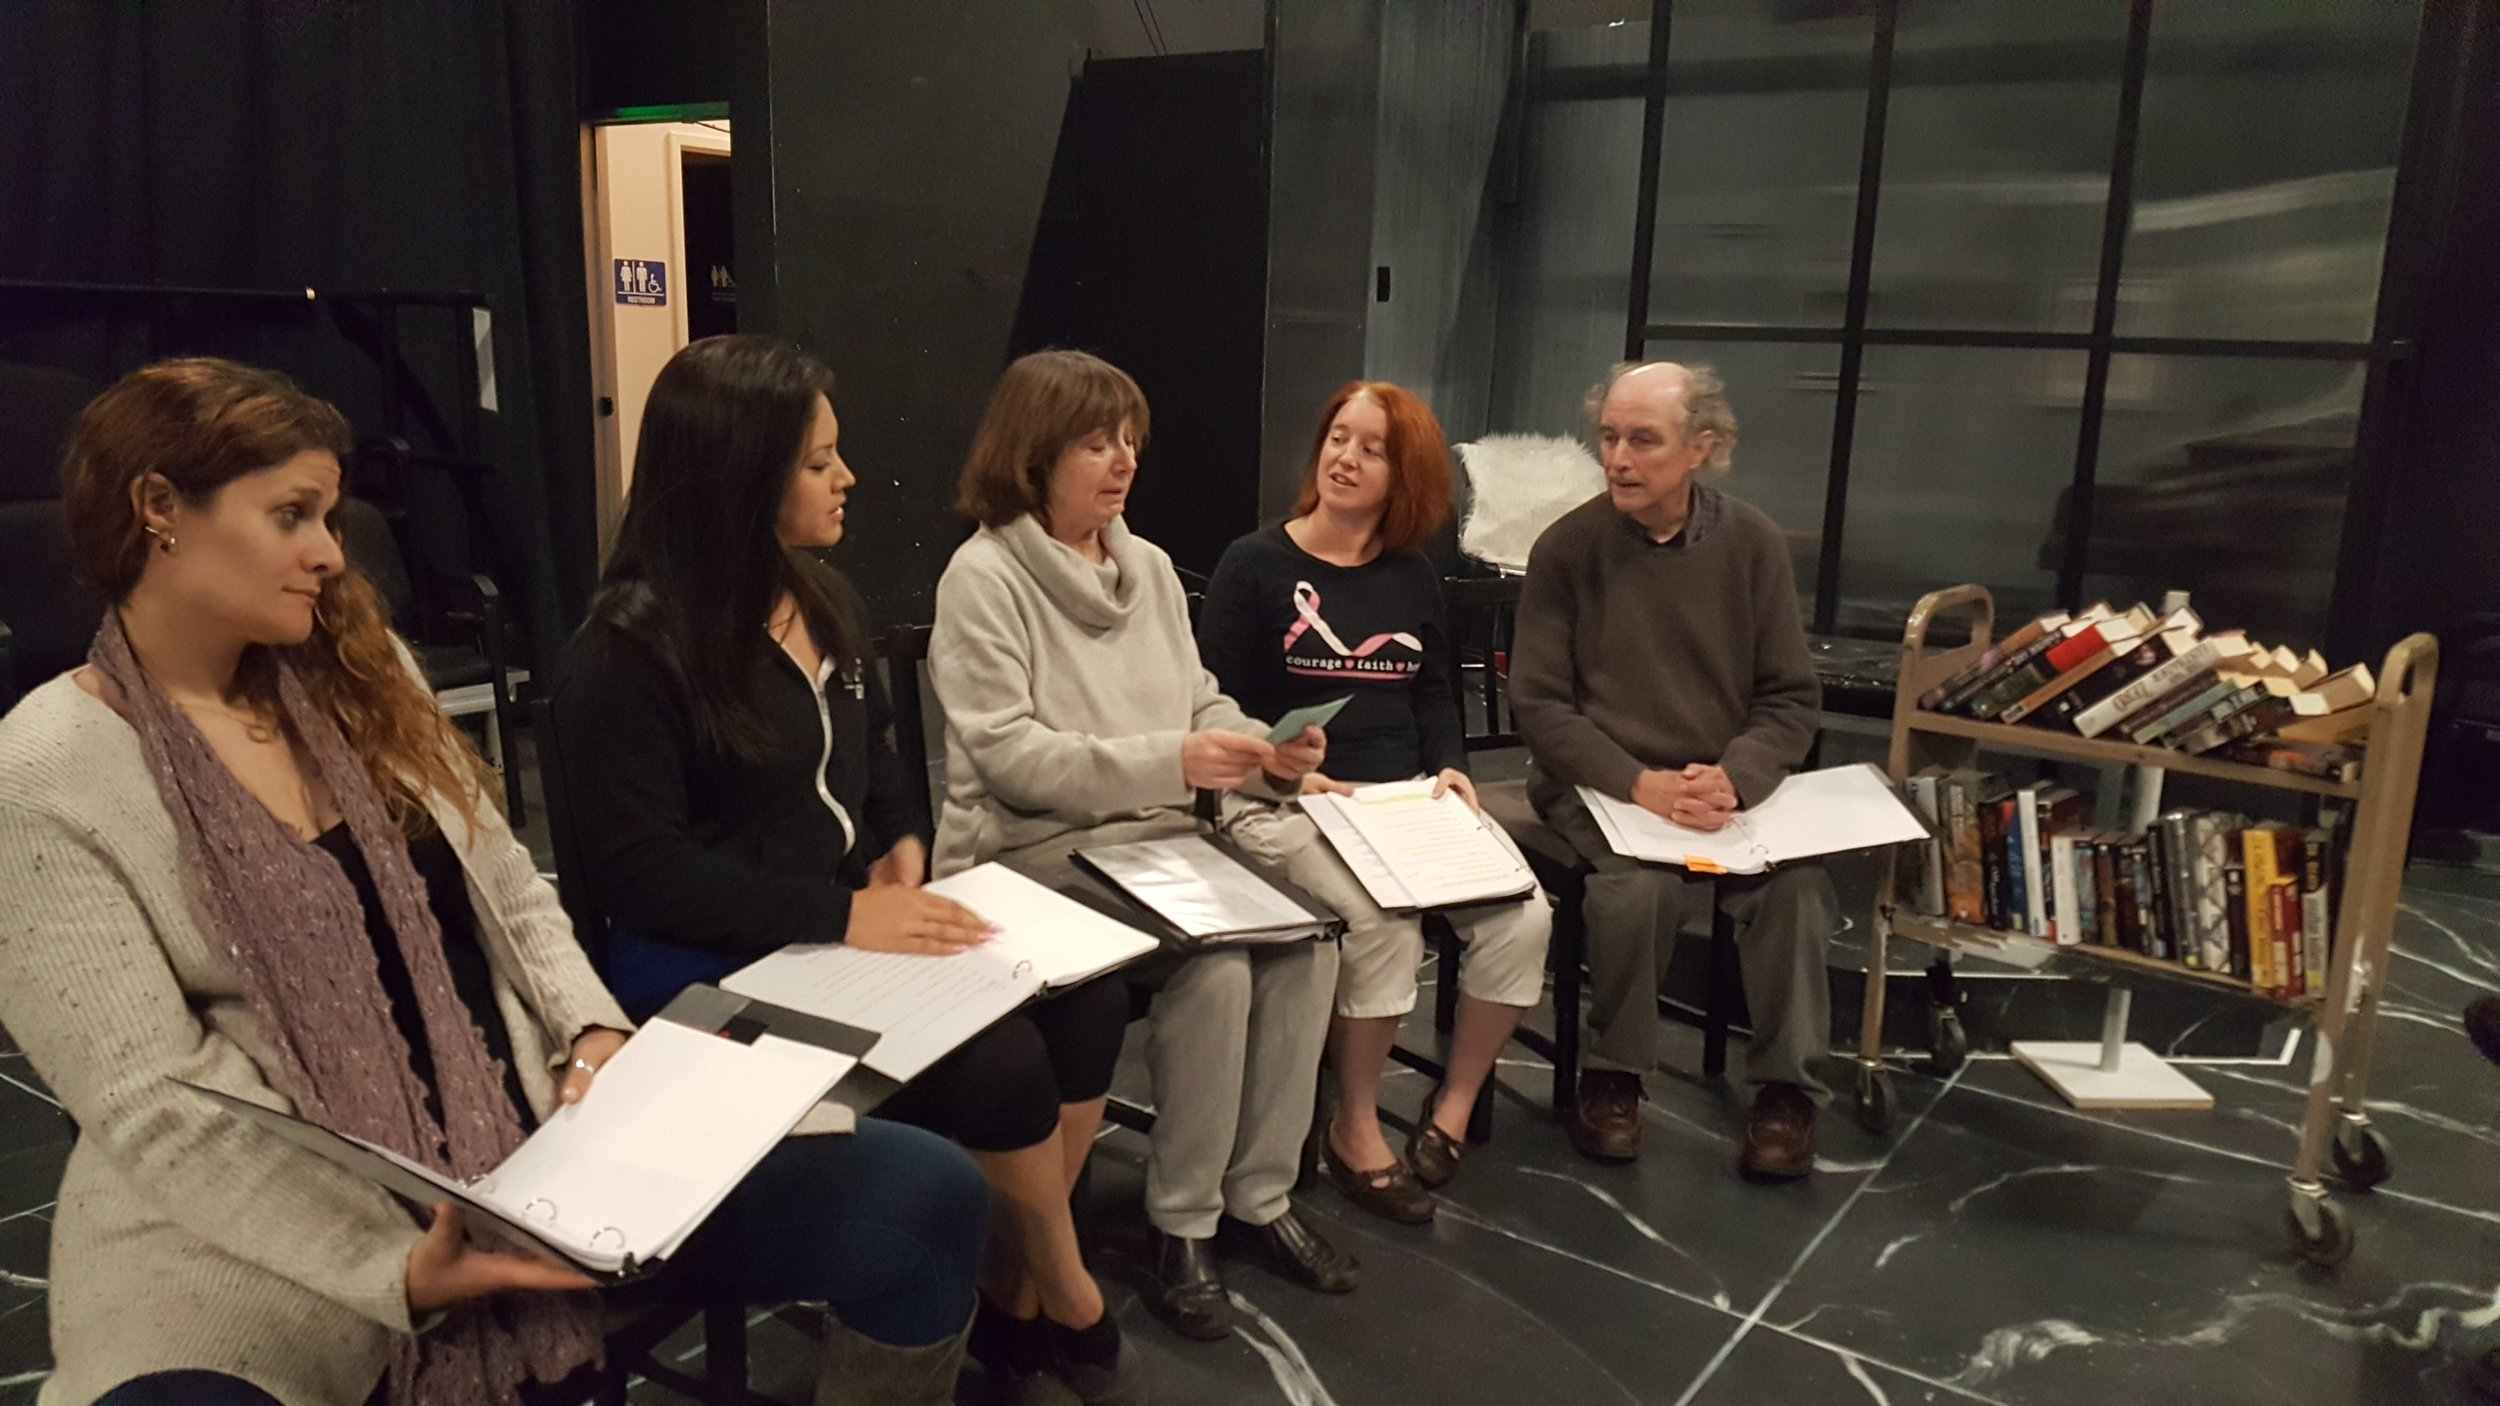 Pictured, left to right: Jennifer Sorkin, Heather Mae Steffen, Pear Theatre founder Diane Tasca, Stephanie Crowley, and Jim Johnson.